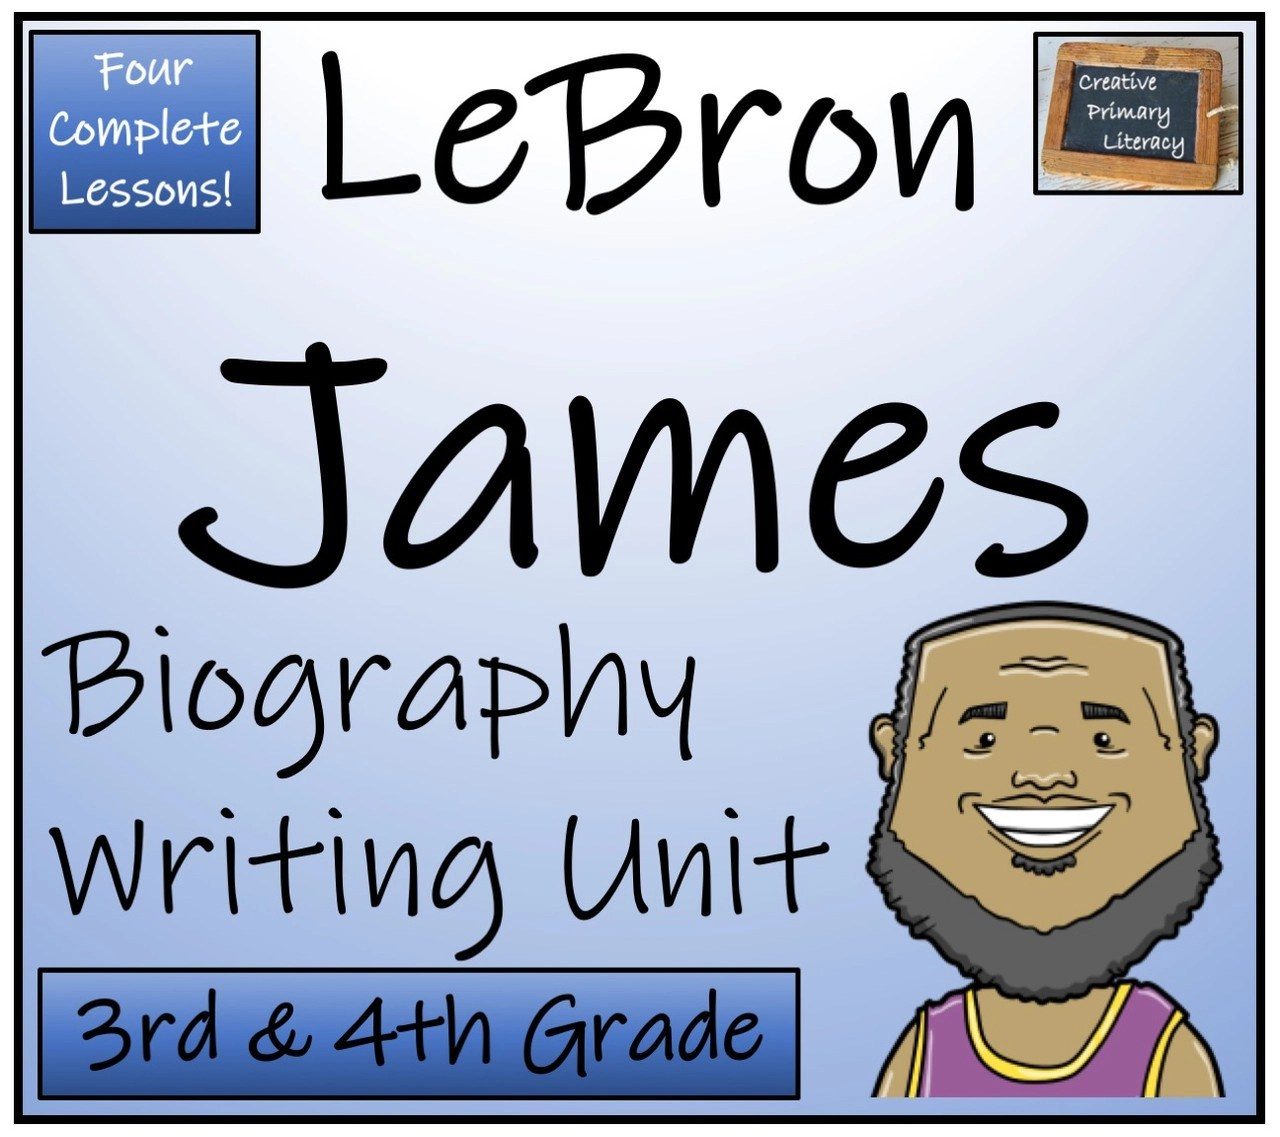 LeBron James - 3rd \u0026 4th Grade Biography Writing Activity - Amped Up  Learning [ 1137 x 1280 Pixel ]